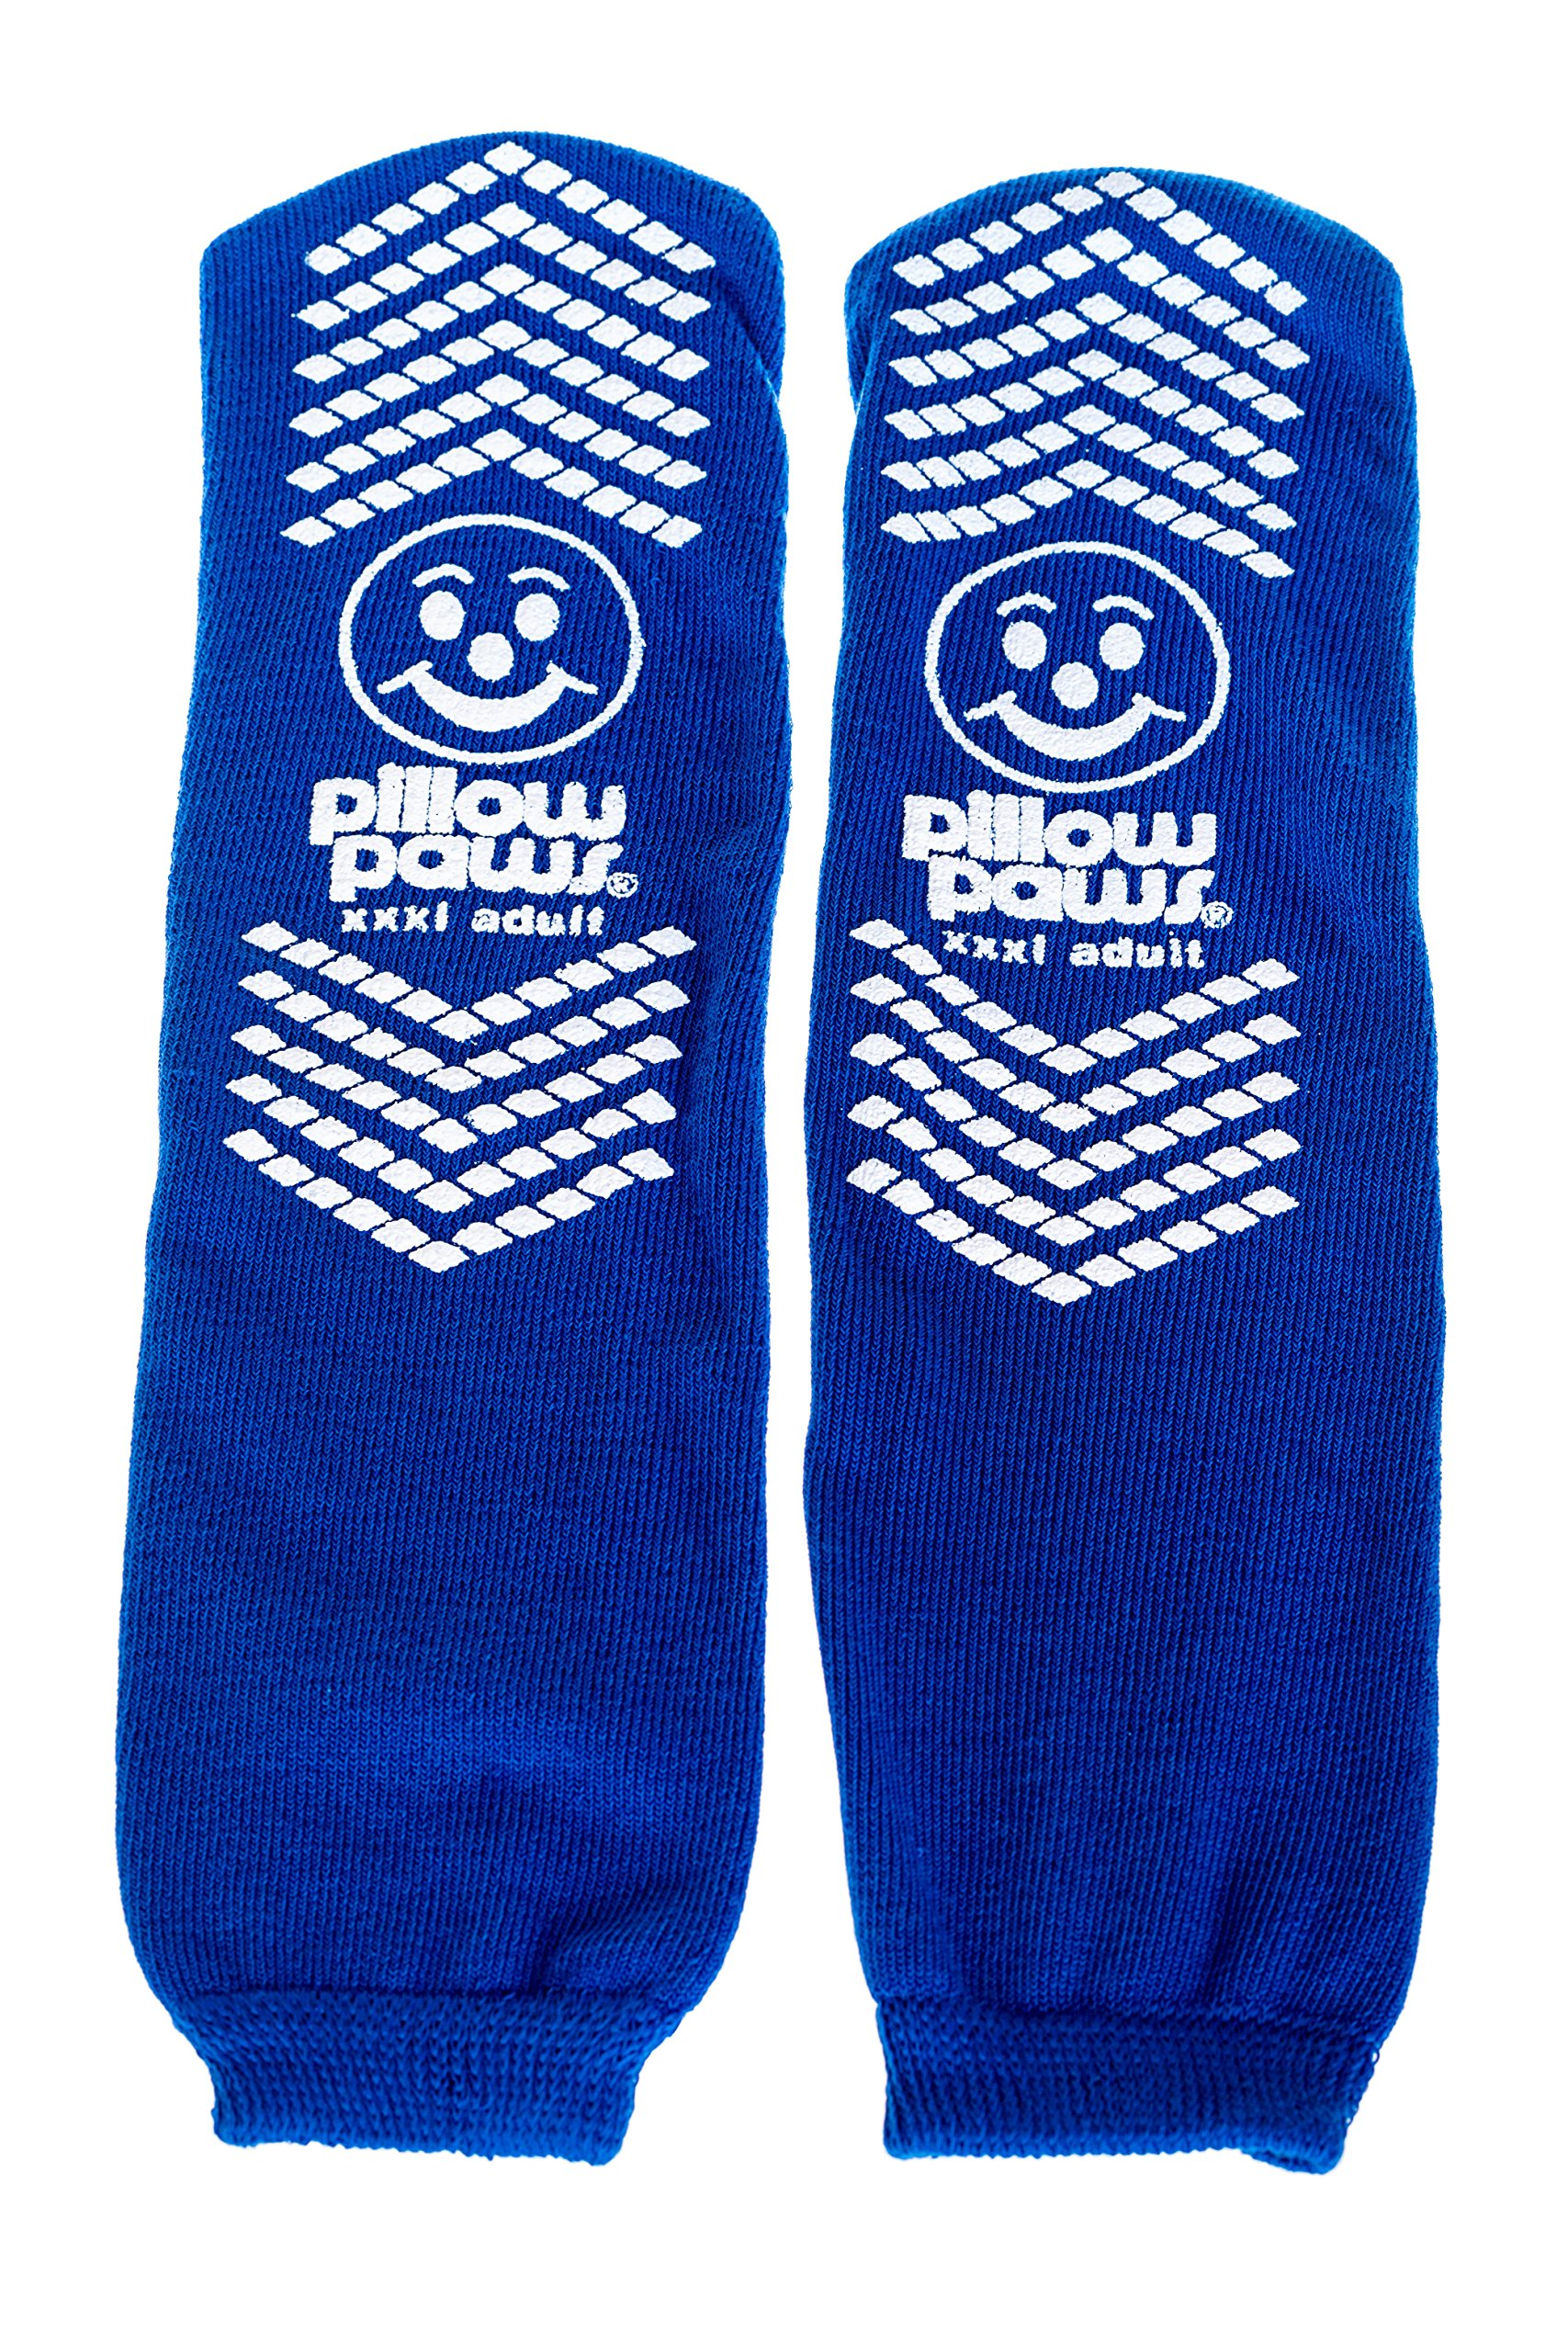 XXXL Blue Slip Stop Non-Skid Slipper Socks (12 Pairs) (Extra Wide Bariatric) by Pillow Paws